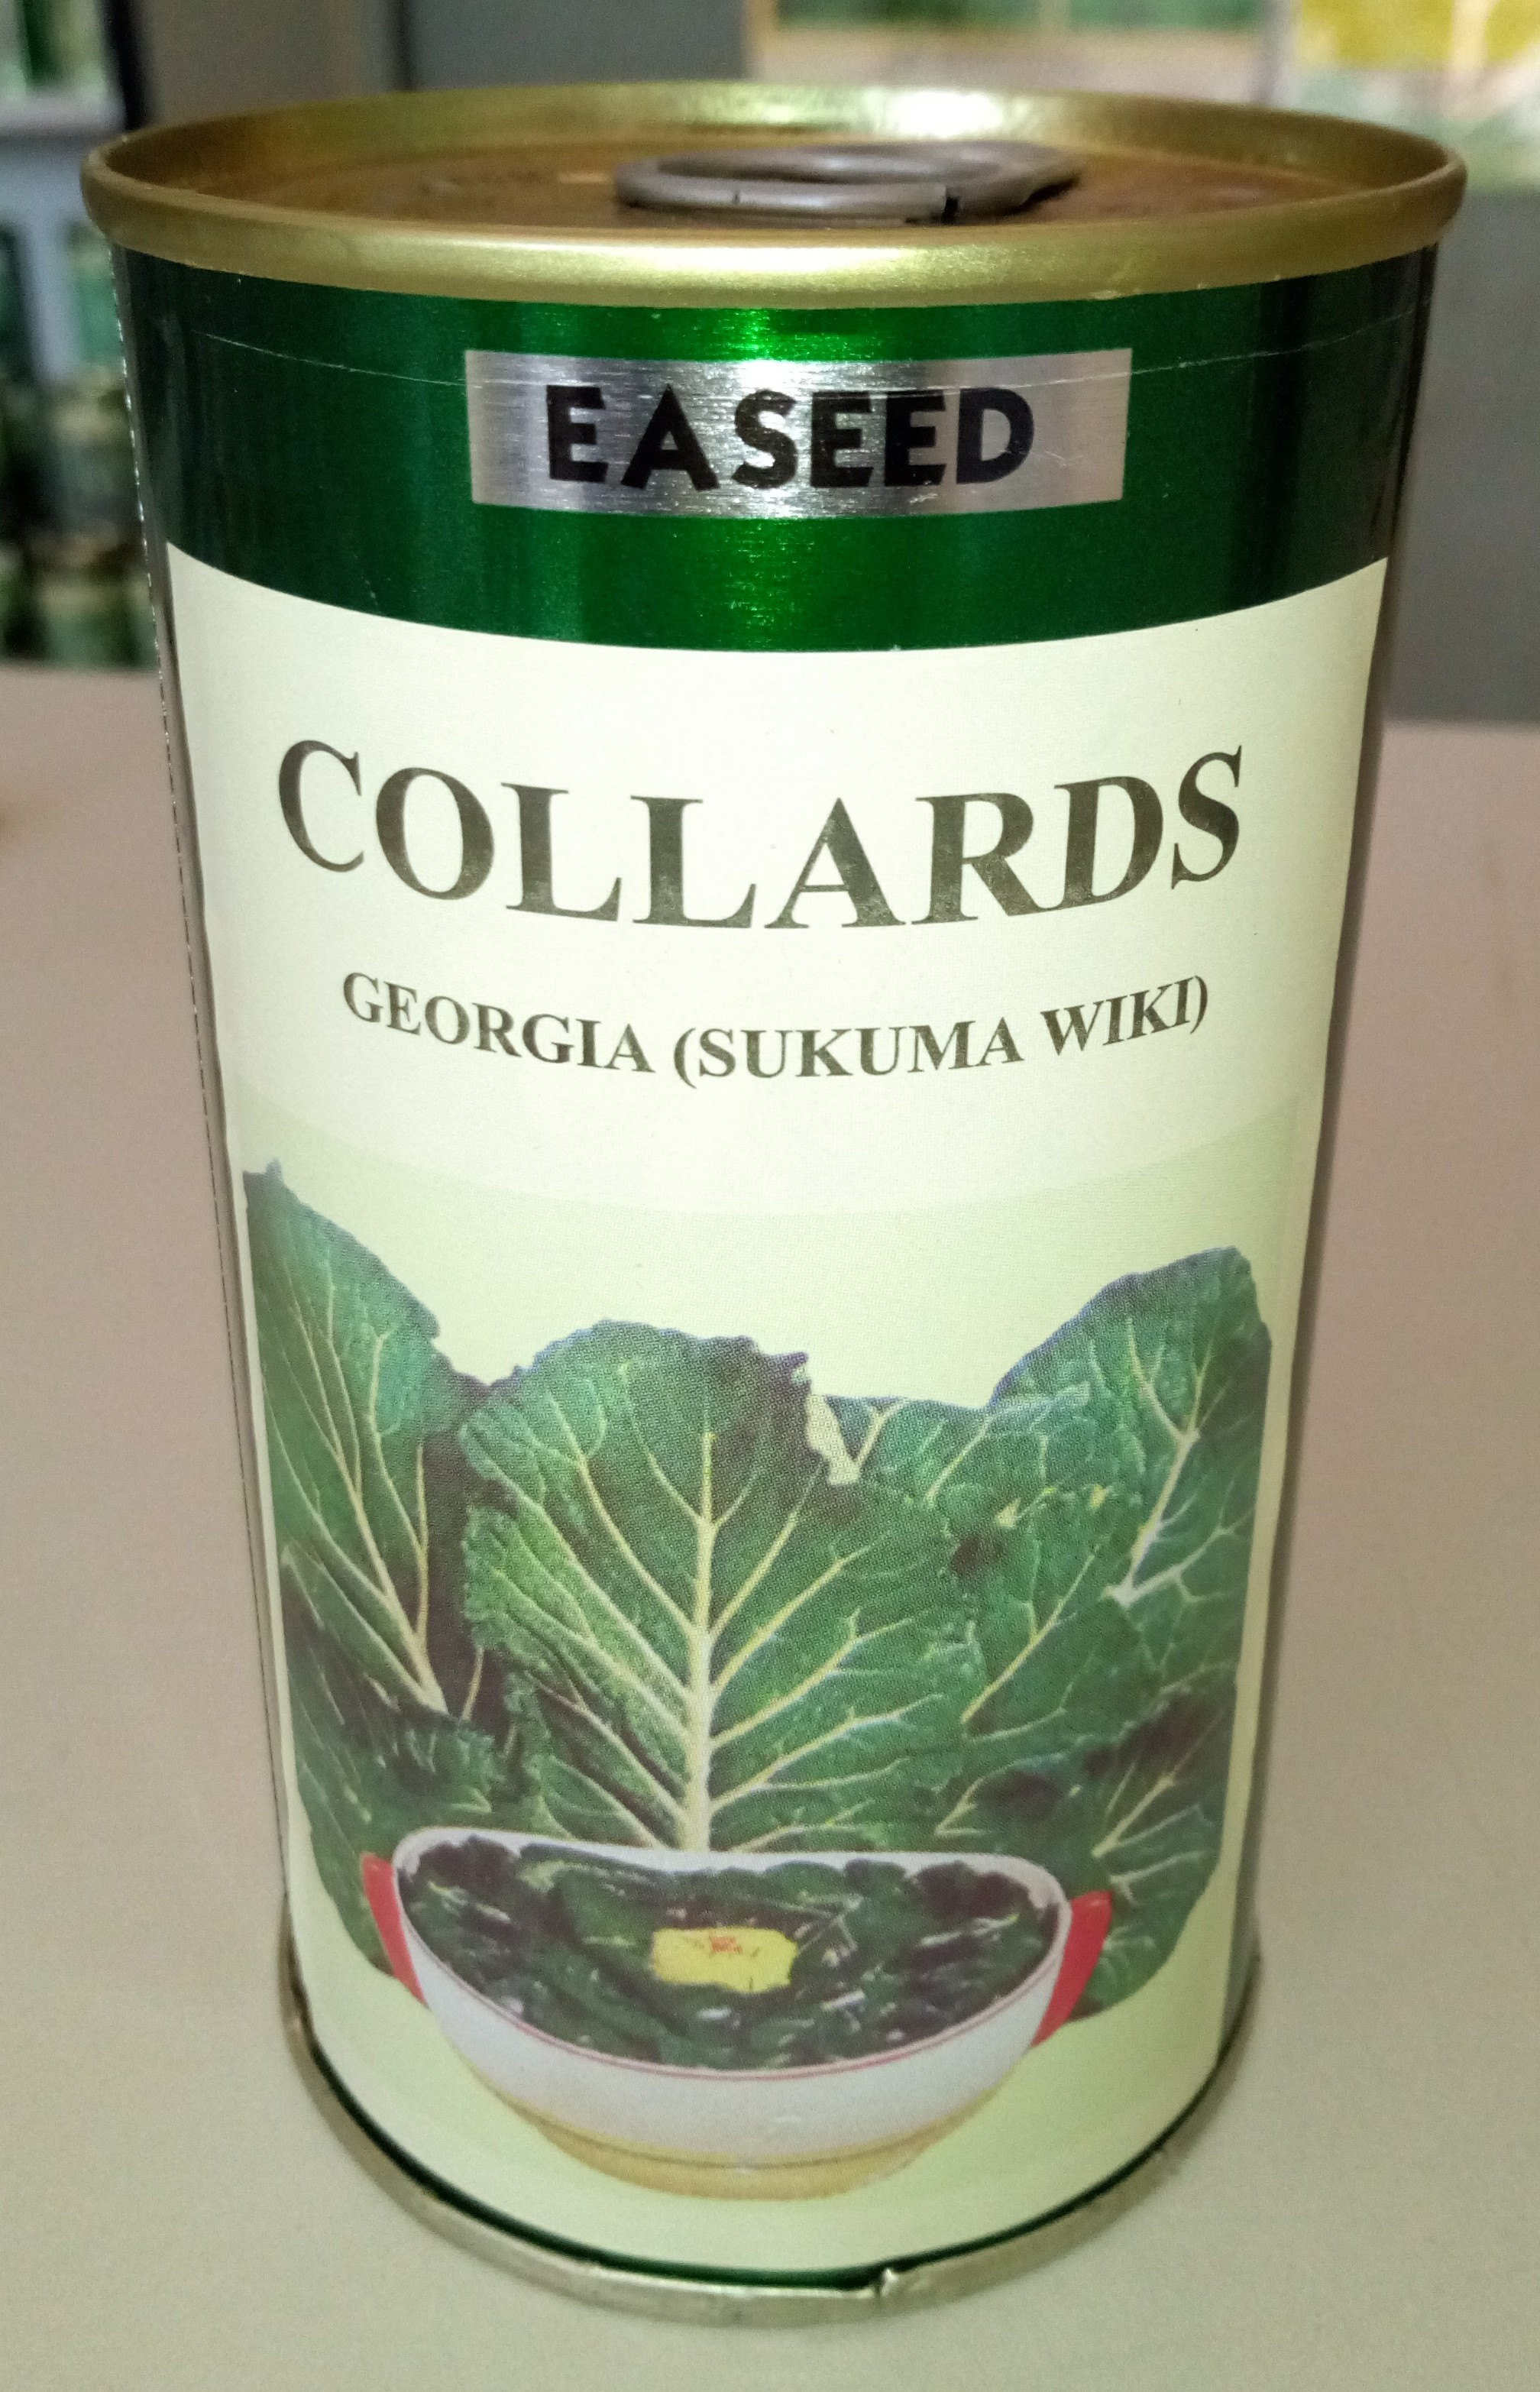 Georgia Collards Sukuma Wiki Seeds (10gm)